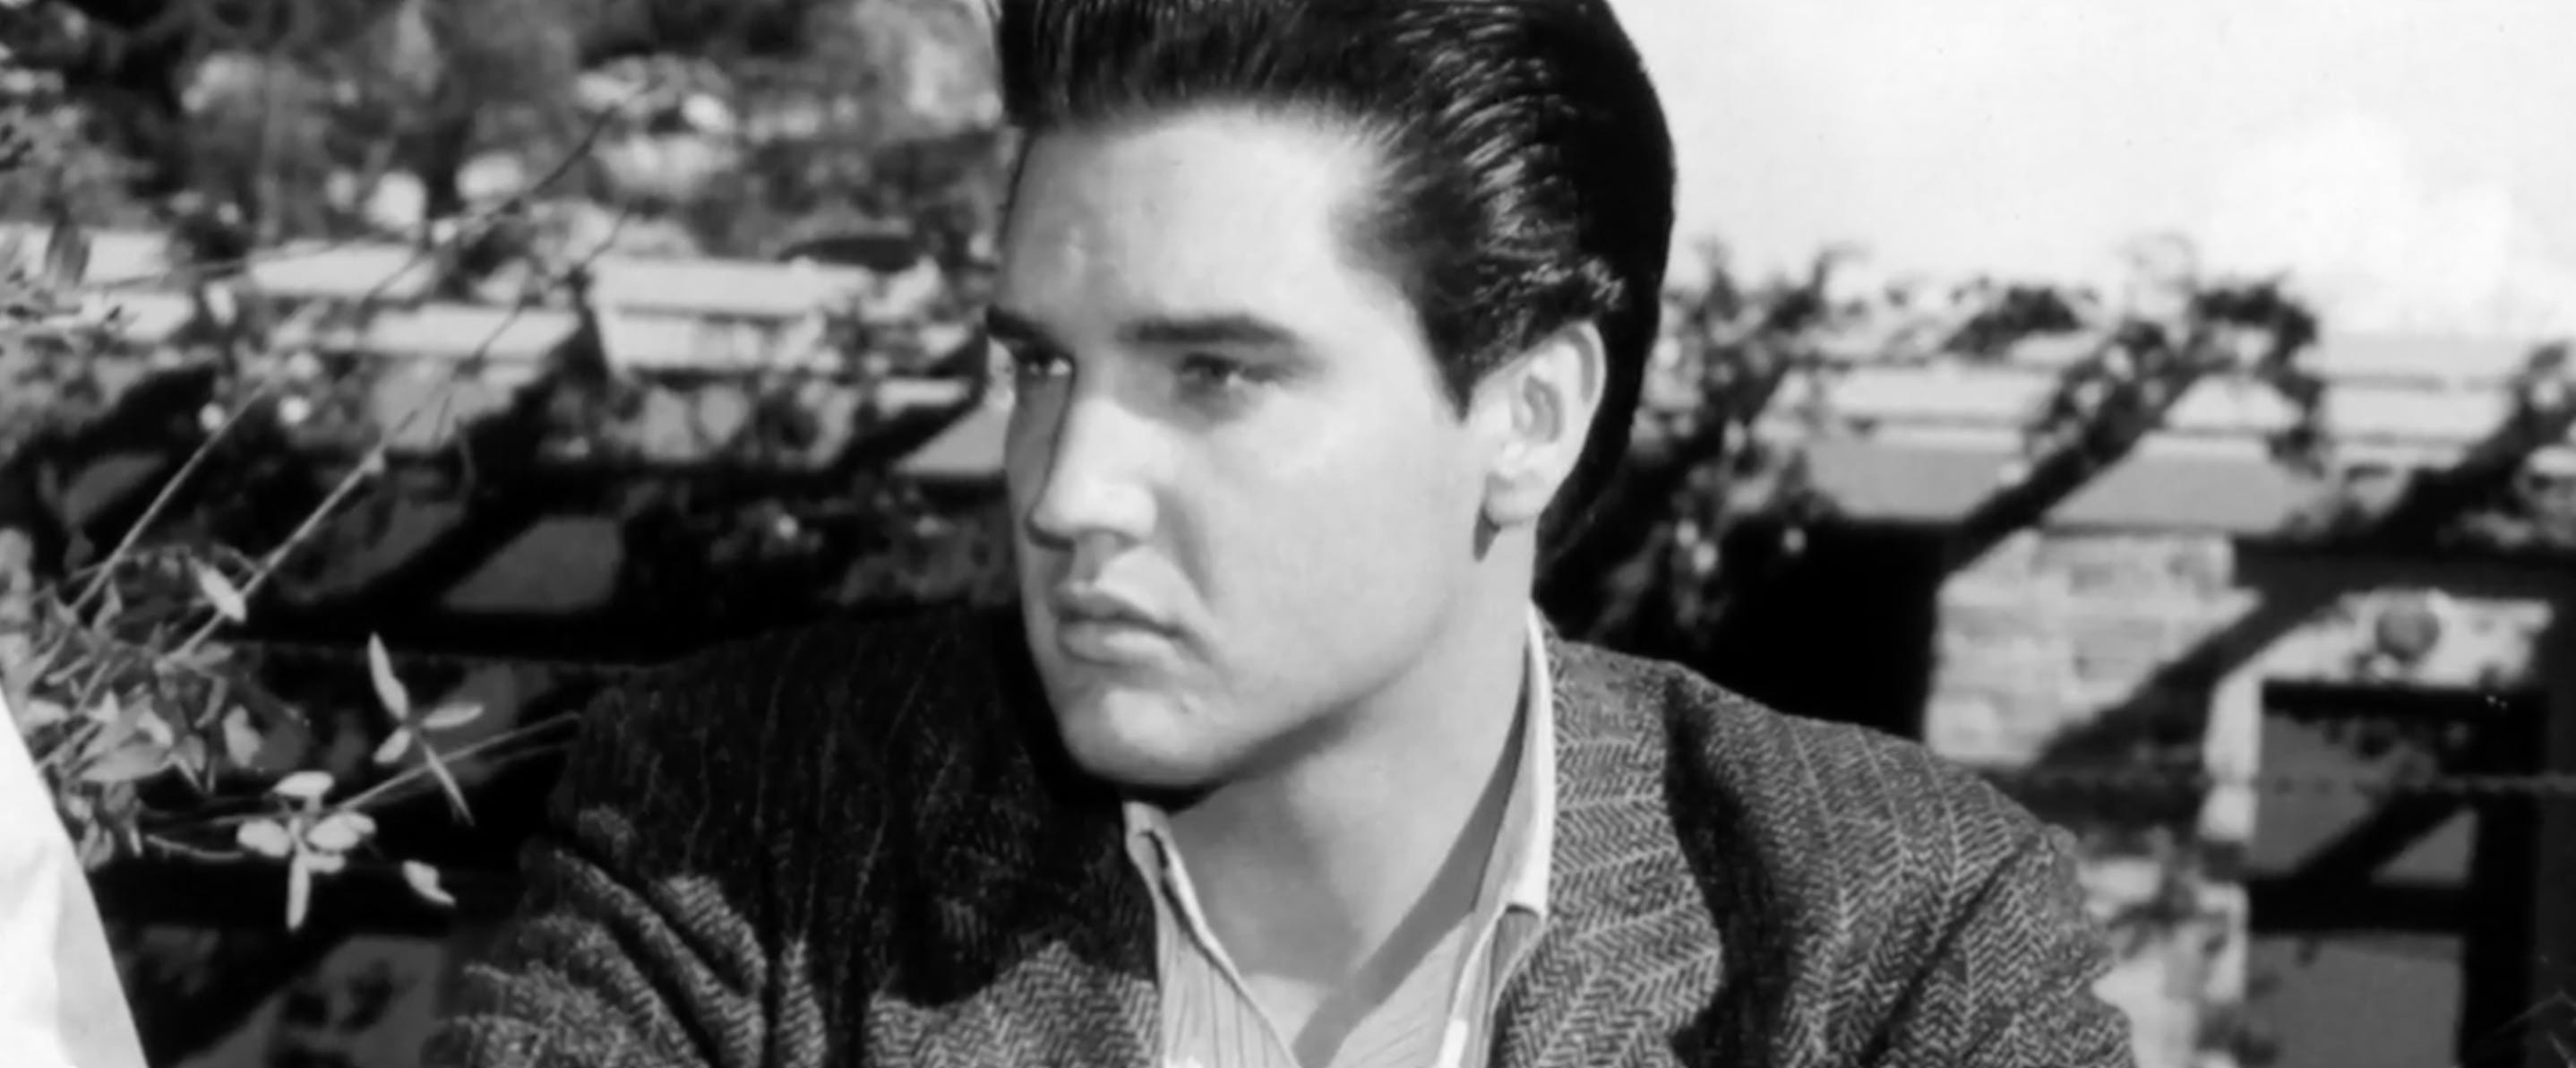 Review: Elvis Presley: The Searcher